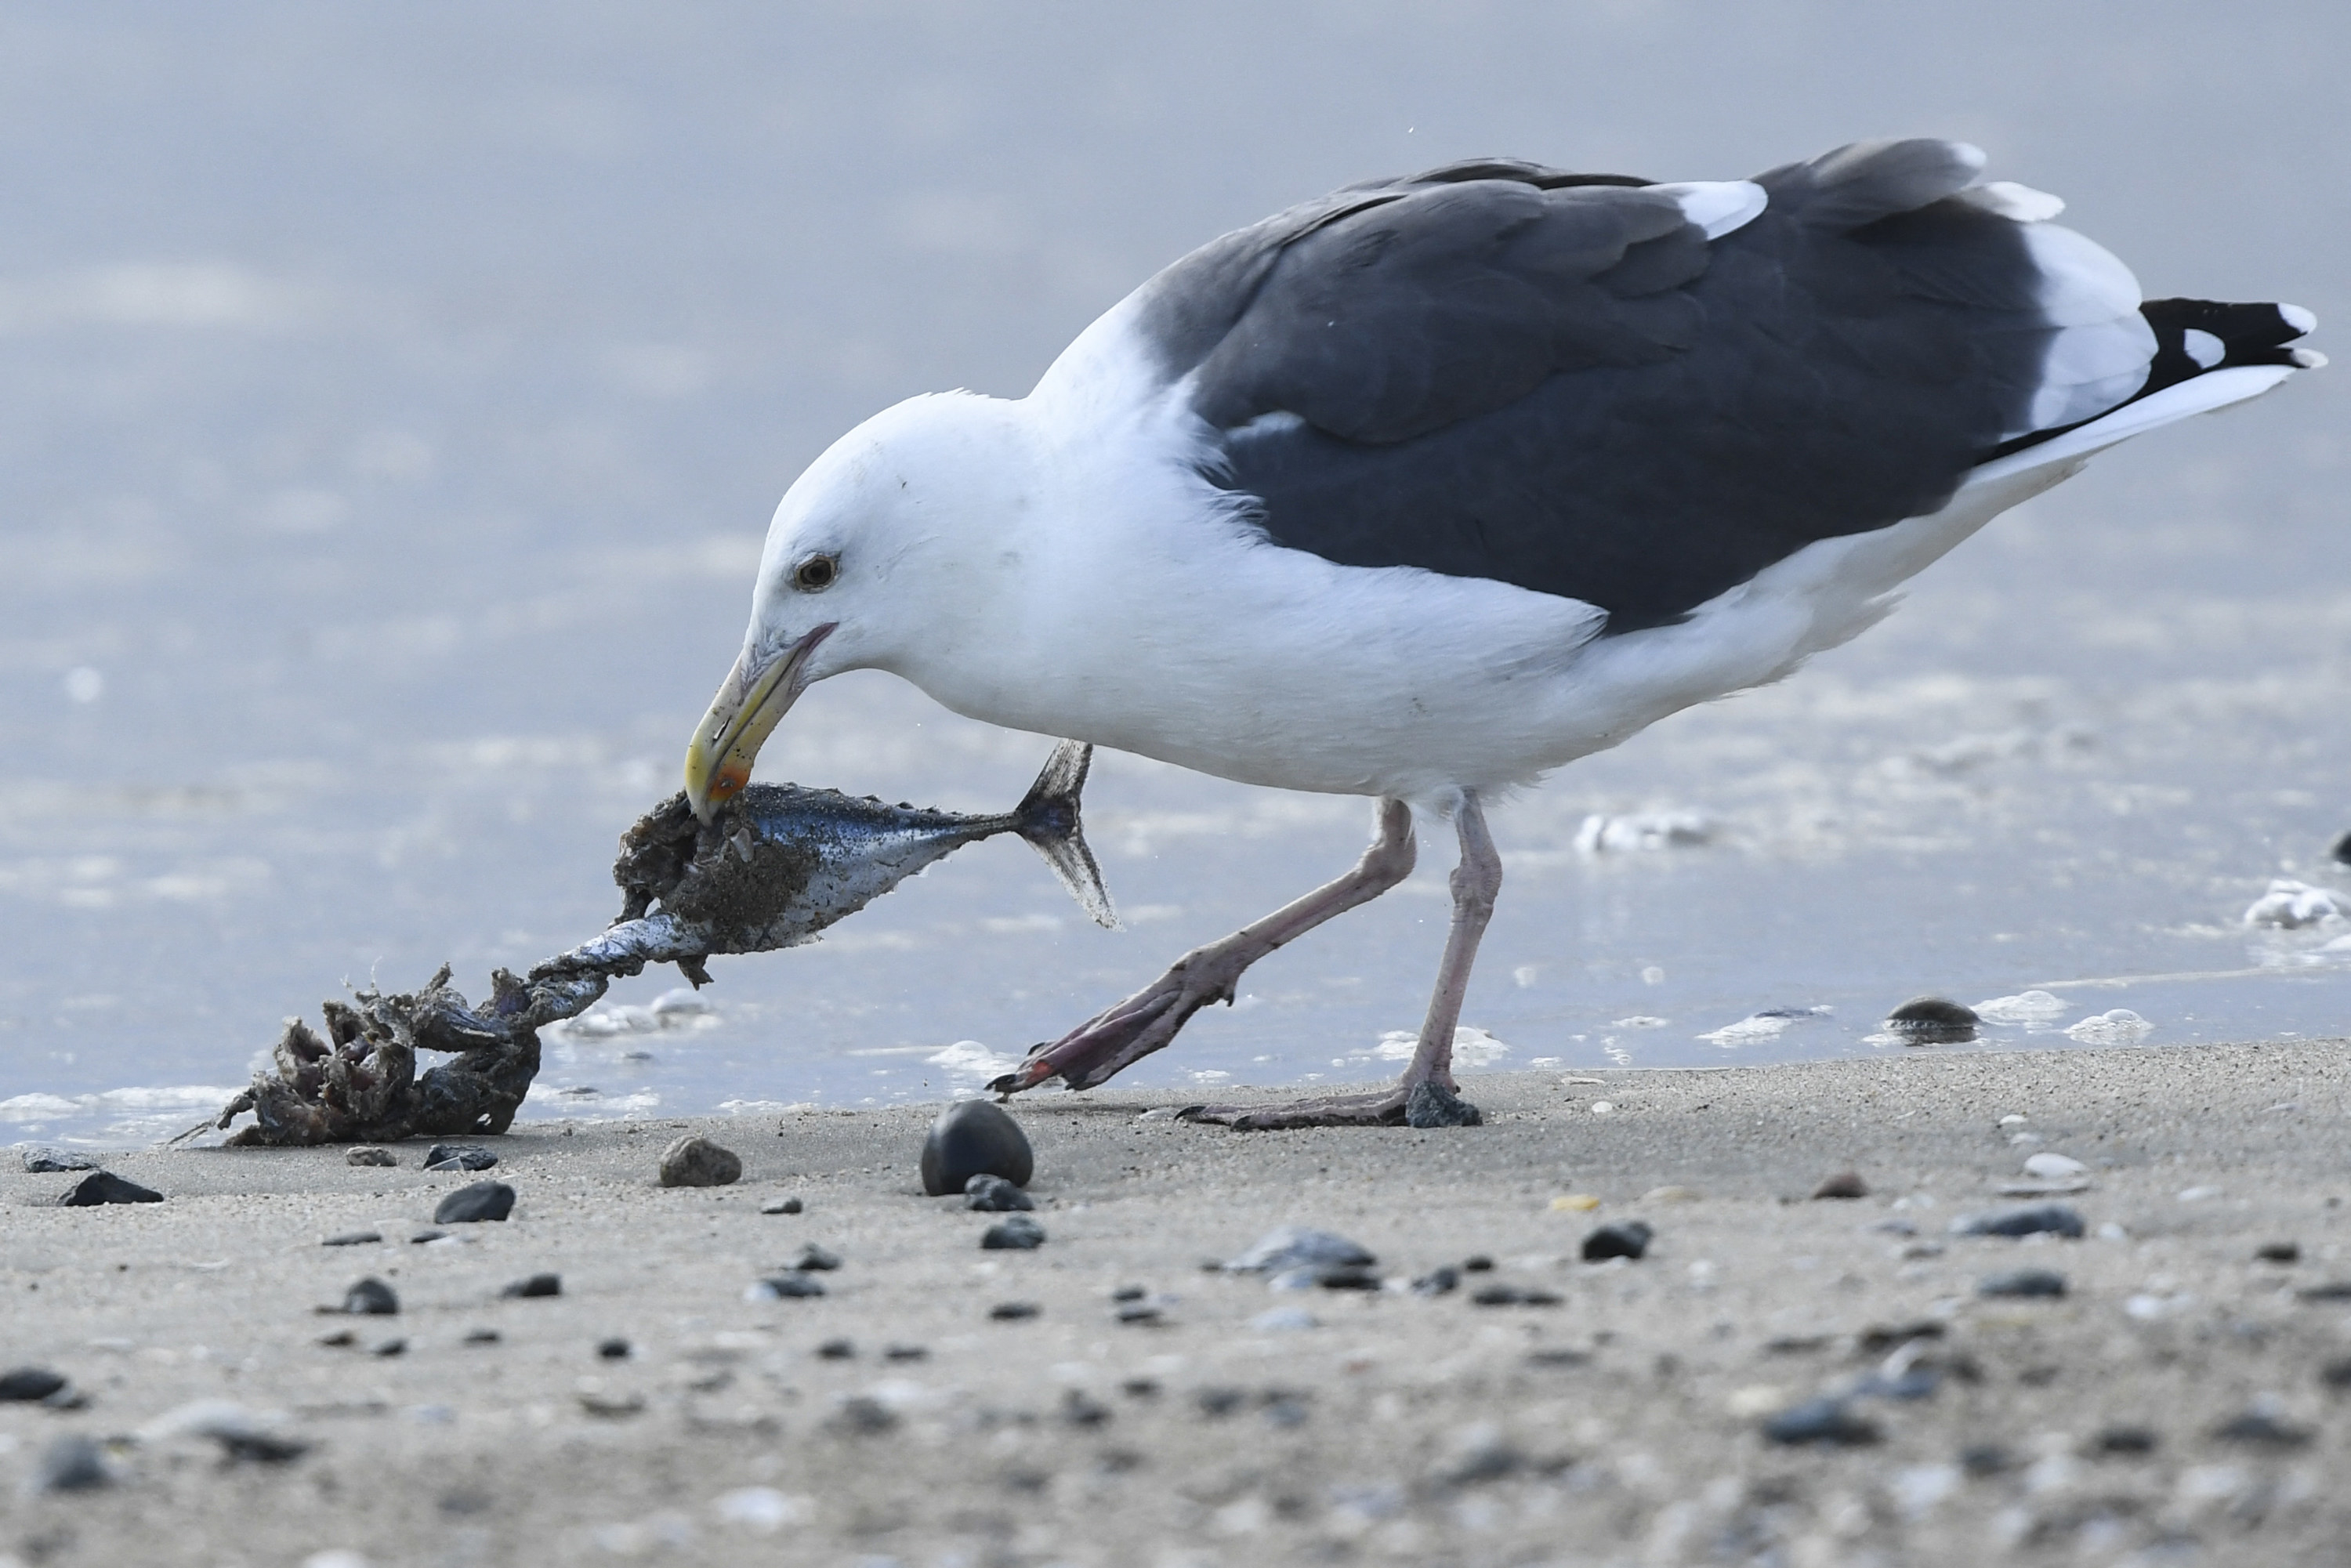 A seagull is seen picking apart a dead fish on the beach